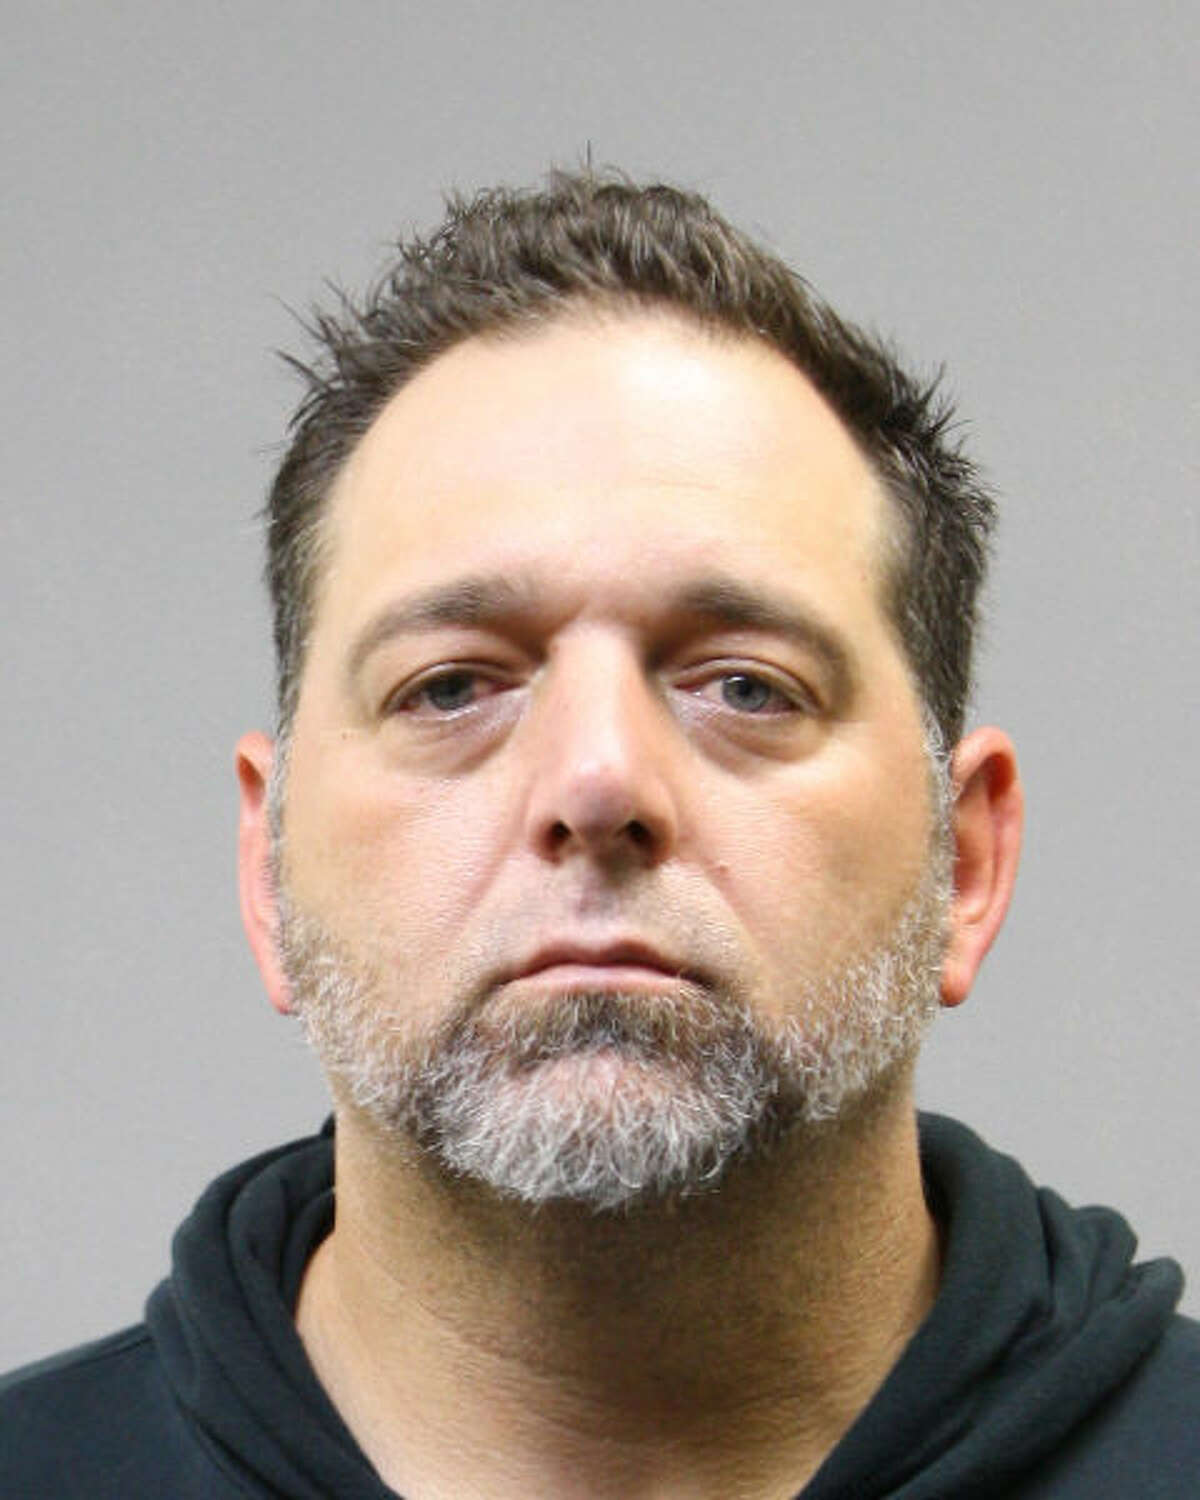 Thomas Moschella, 45, was arrested Tuesday at his northwest Harris County home by the Harris County Sheriff's tactical, bomb squad, violent crime and auto theft units. He has been charged with possession of prohibited weapon IED and possession with intent to distribute a controlled substance after more than 60 grams of meth were seized, according to the sheriff's office.